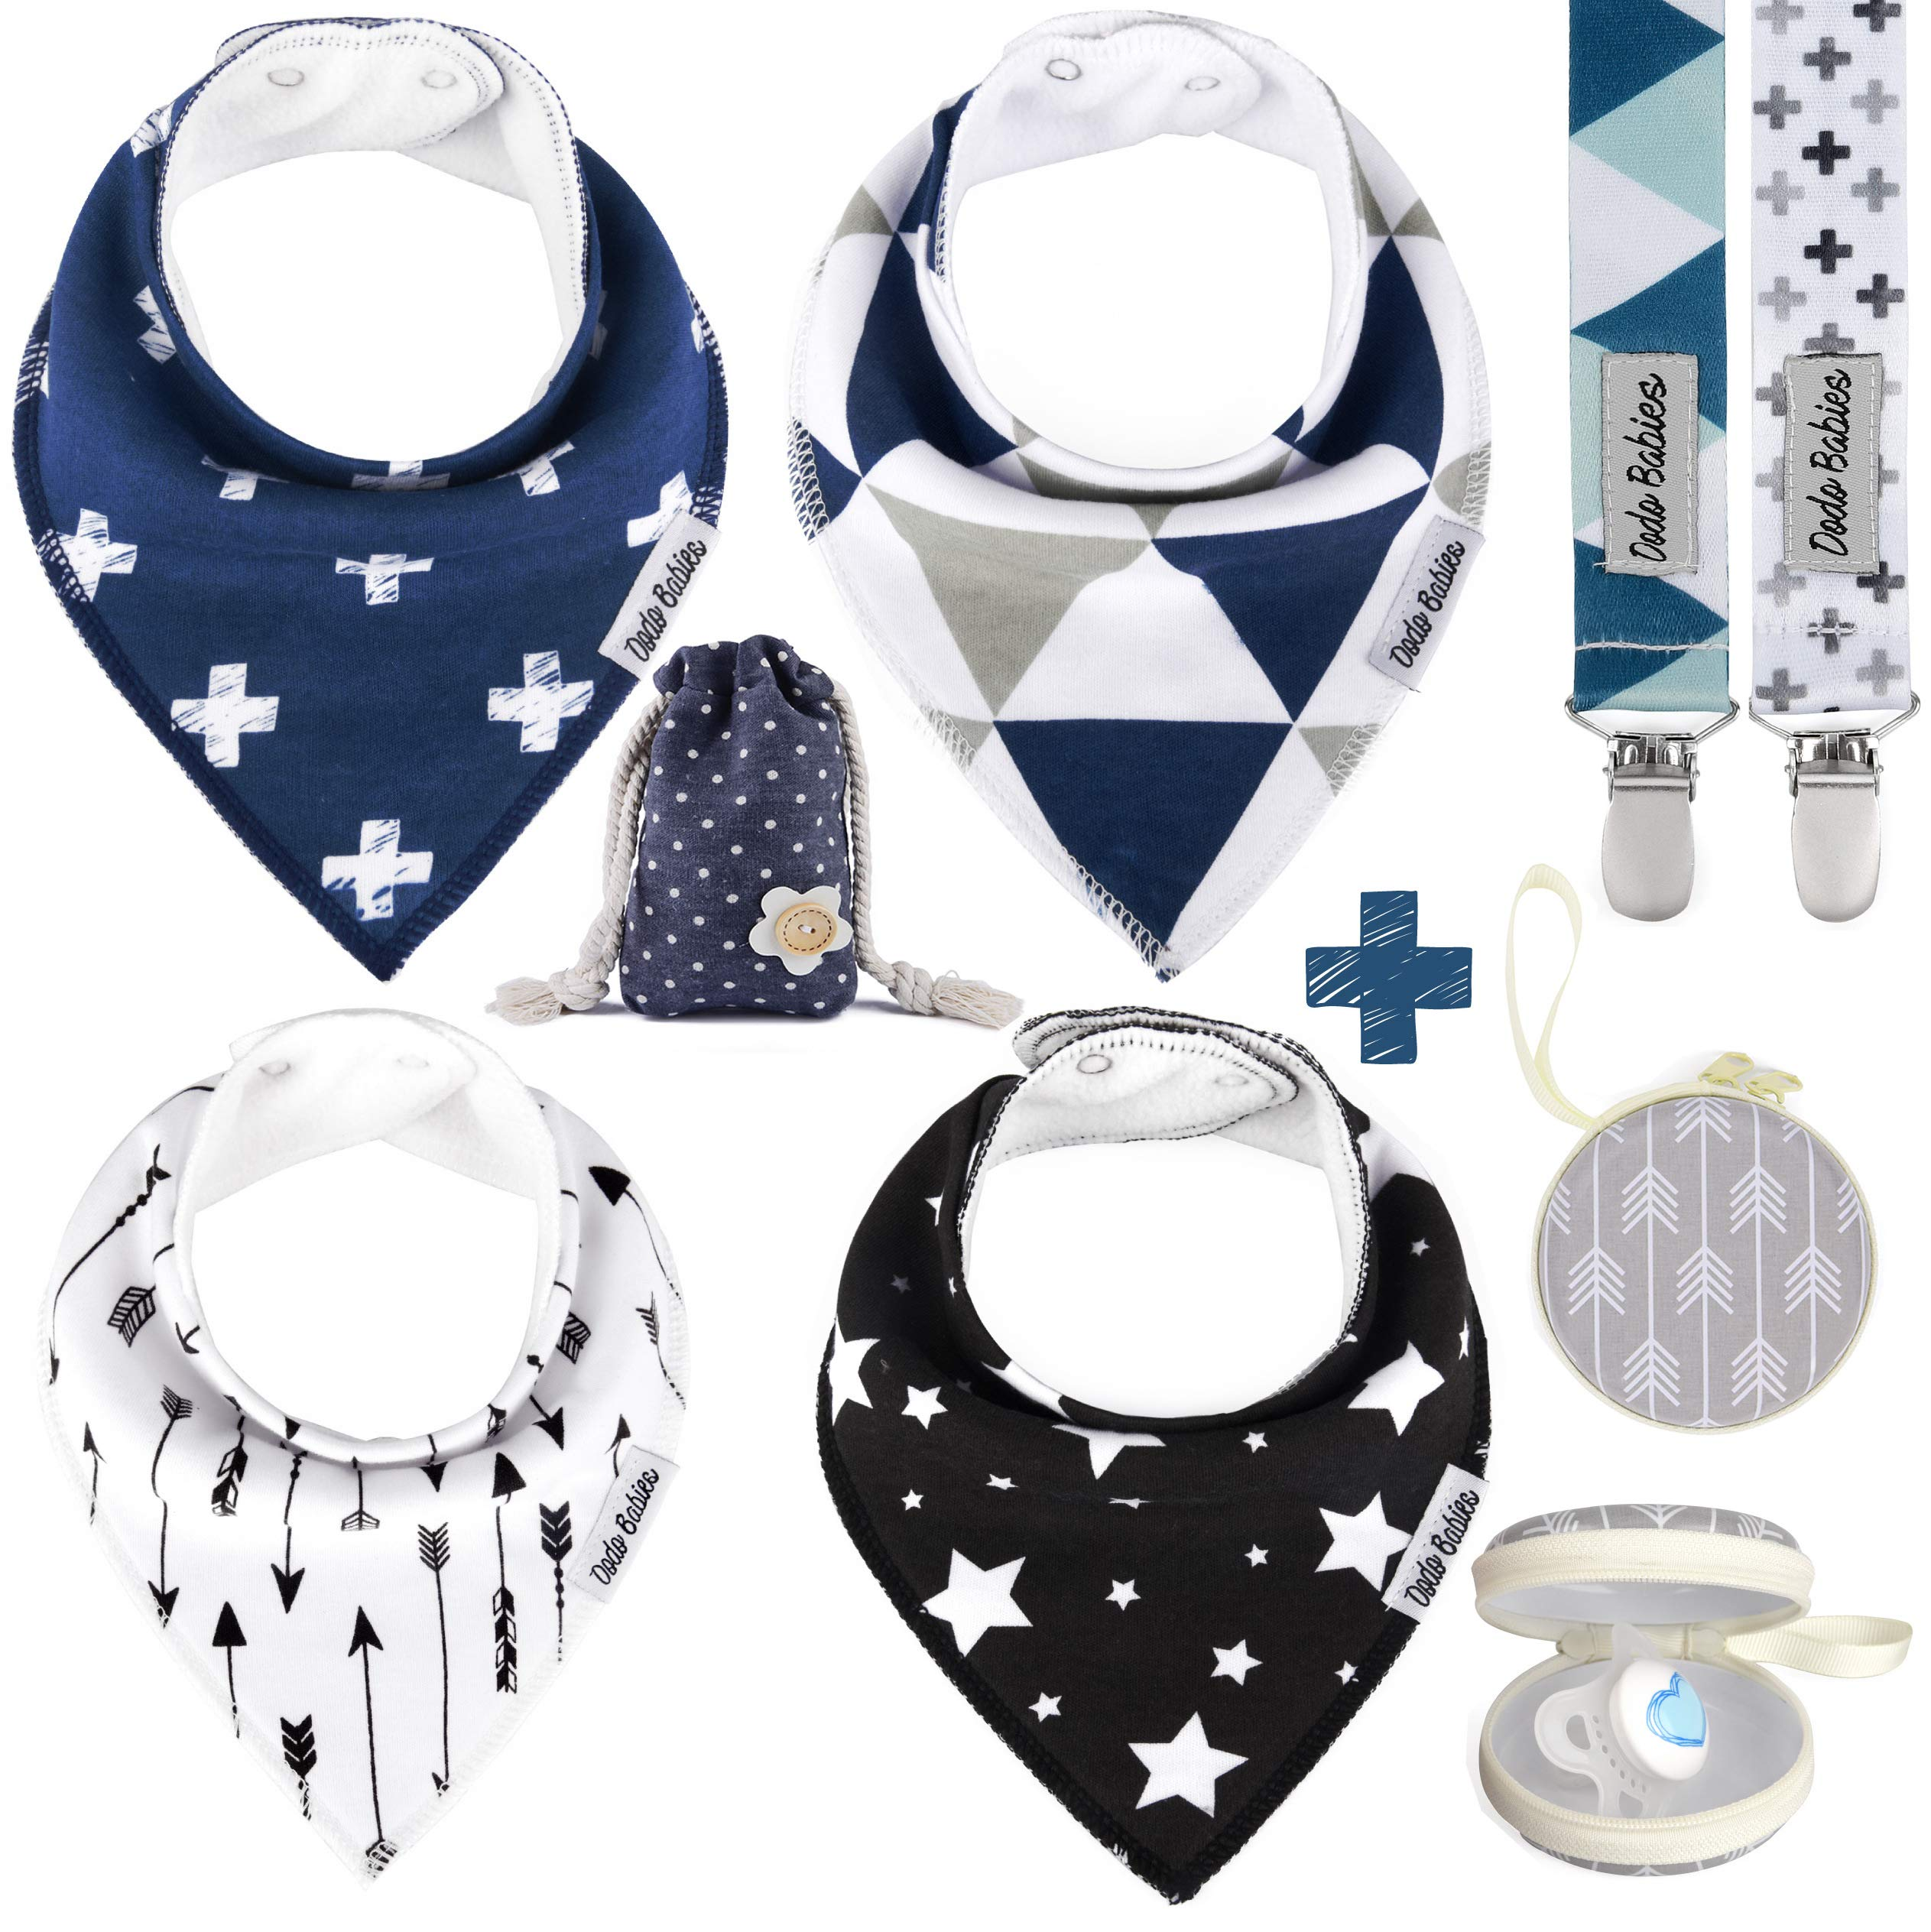 BabyBandana DroolBibs by Dodo Babies + 2 Pacifier Clips + Pacifier Case in a Gift Bag, Pack of 4 Premium Quality for Boys or Girls, Excellent Baby Shower/Registry Gift by Dodo Babies